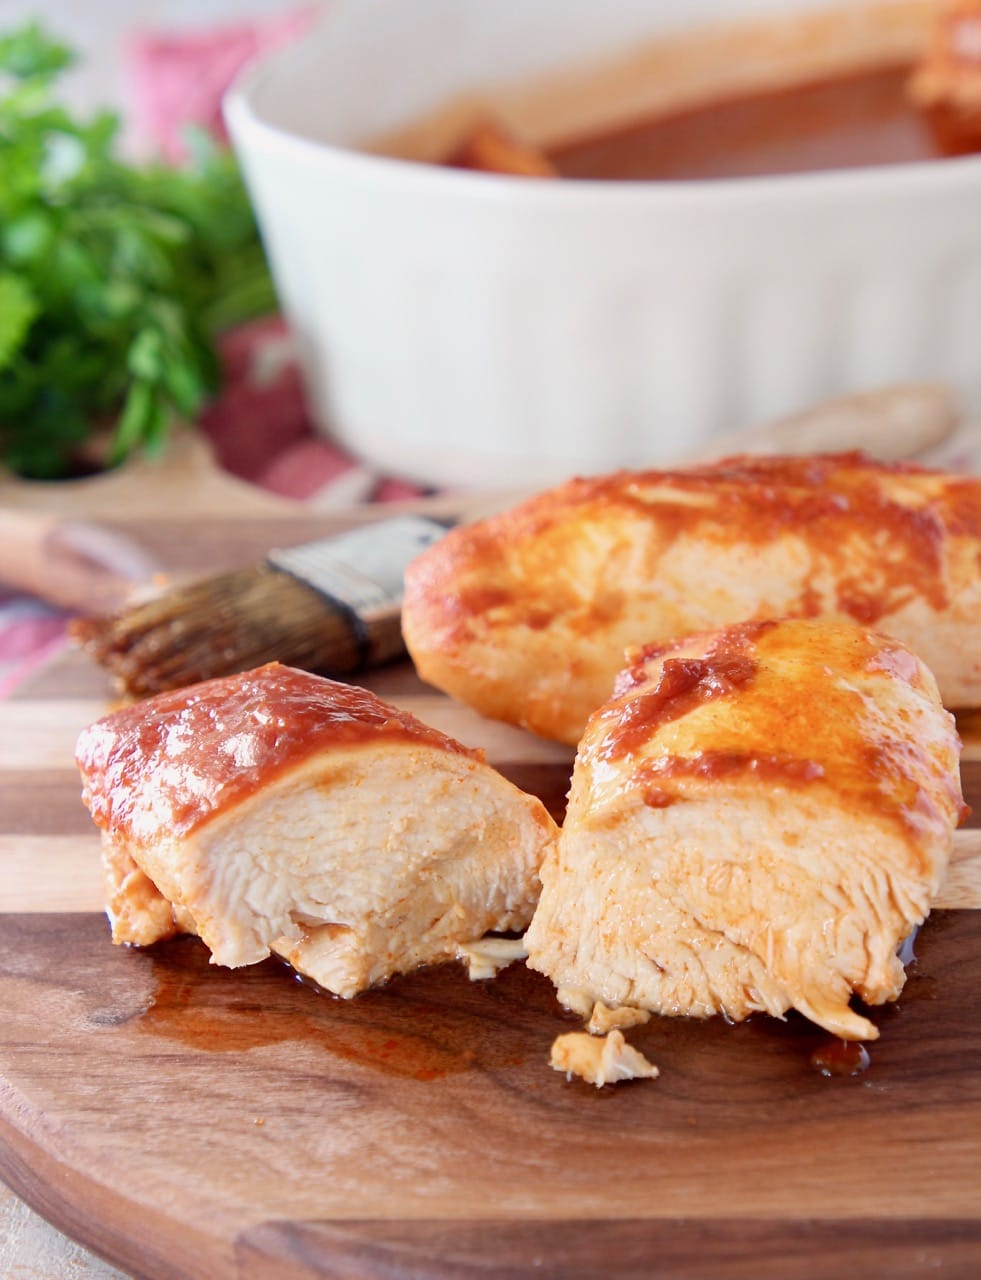 Two pieces of baked chicken on wood cutting board with one piece of chicken sliced in half and pastry brush in the background